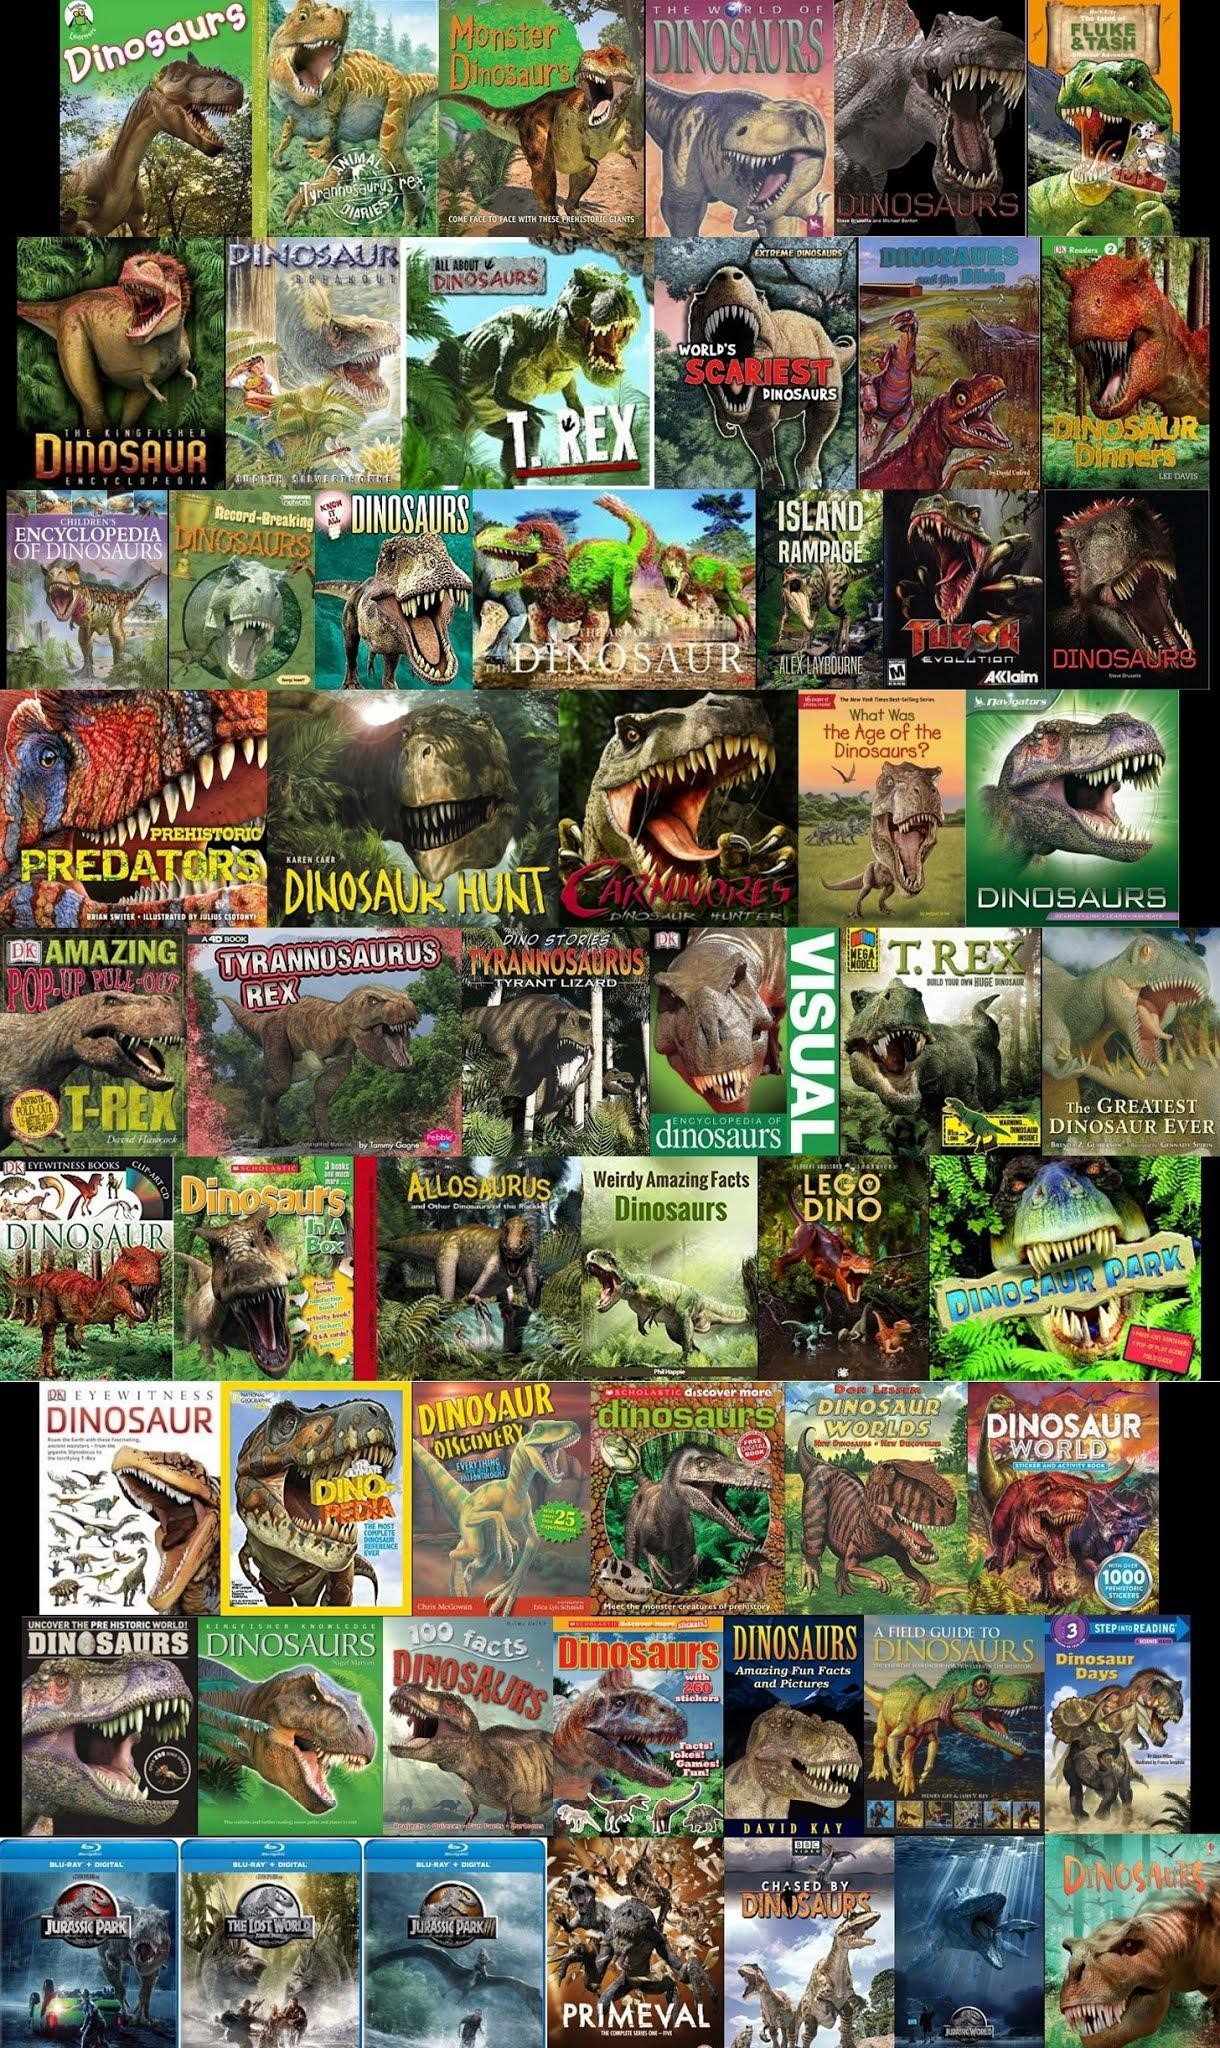 The results of Google image search for 'dinosaur book' or 'dinosaur DVD': dozens and dozens of prehistoric animals (mostly theropods) that want to eat our faces.